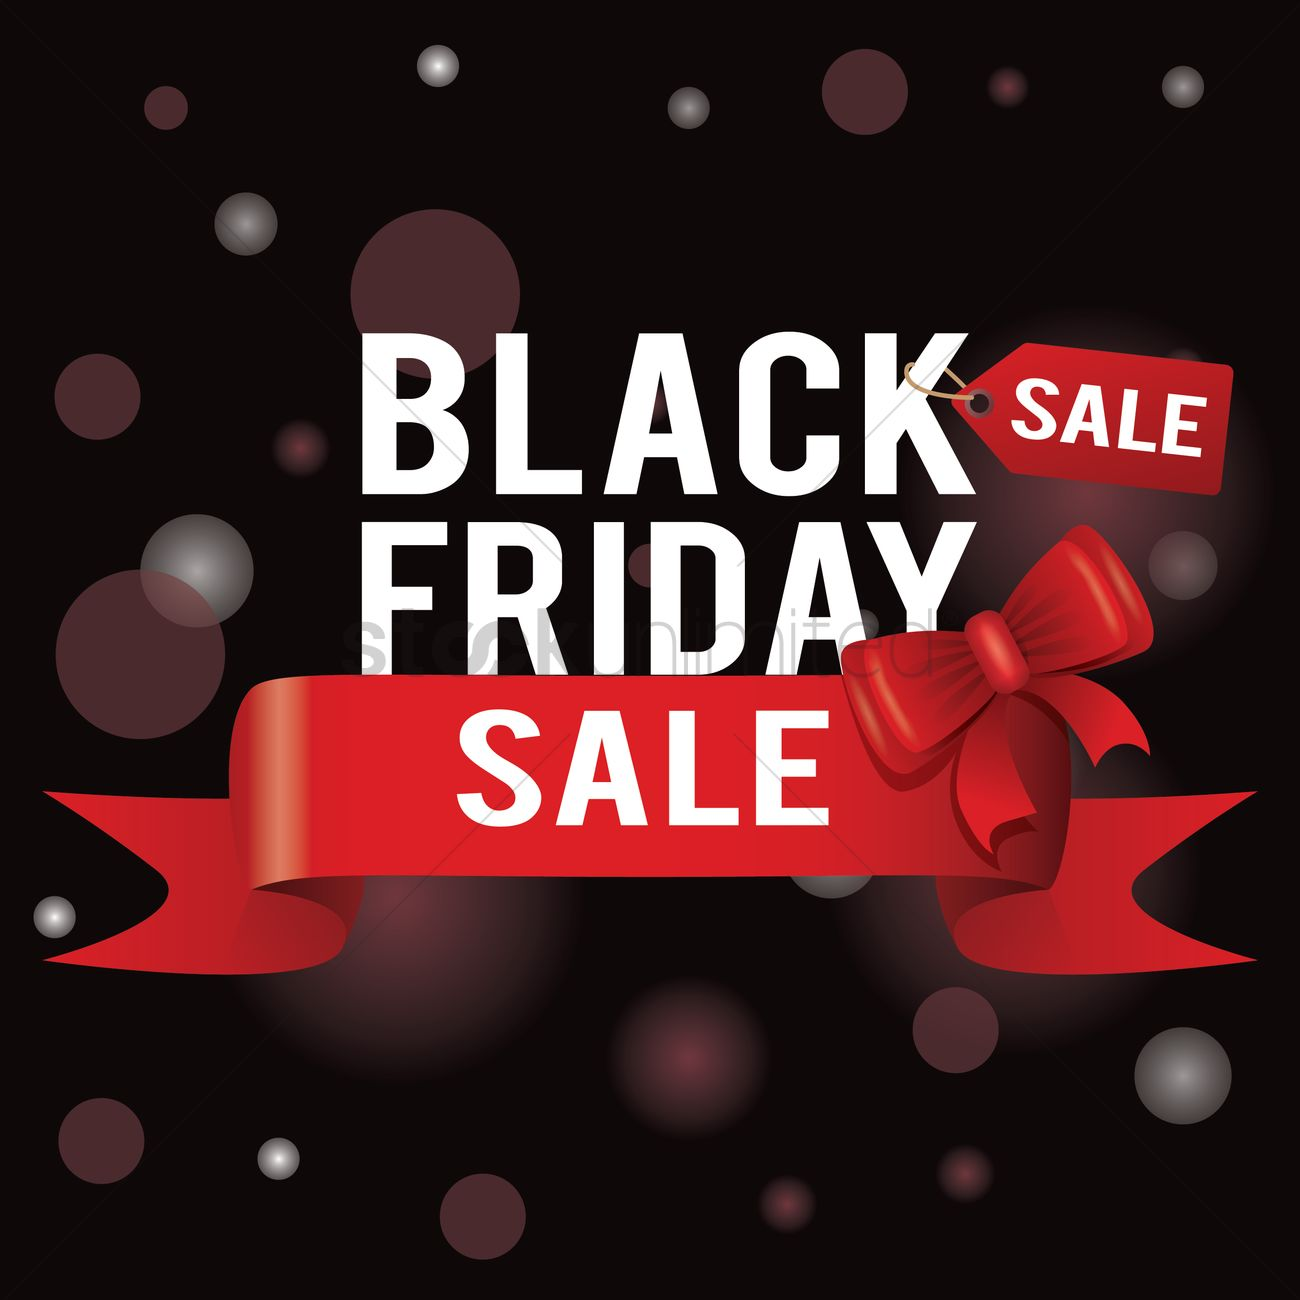 Black friday sale wallpaper Vector Image   1583200 StockUnlimited 1300x1300